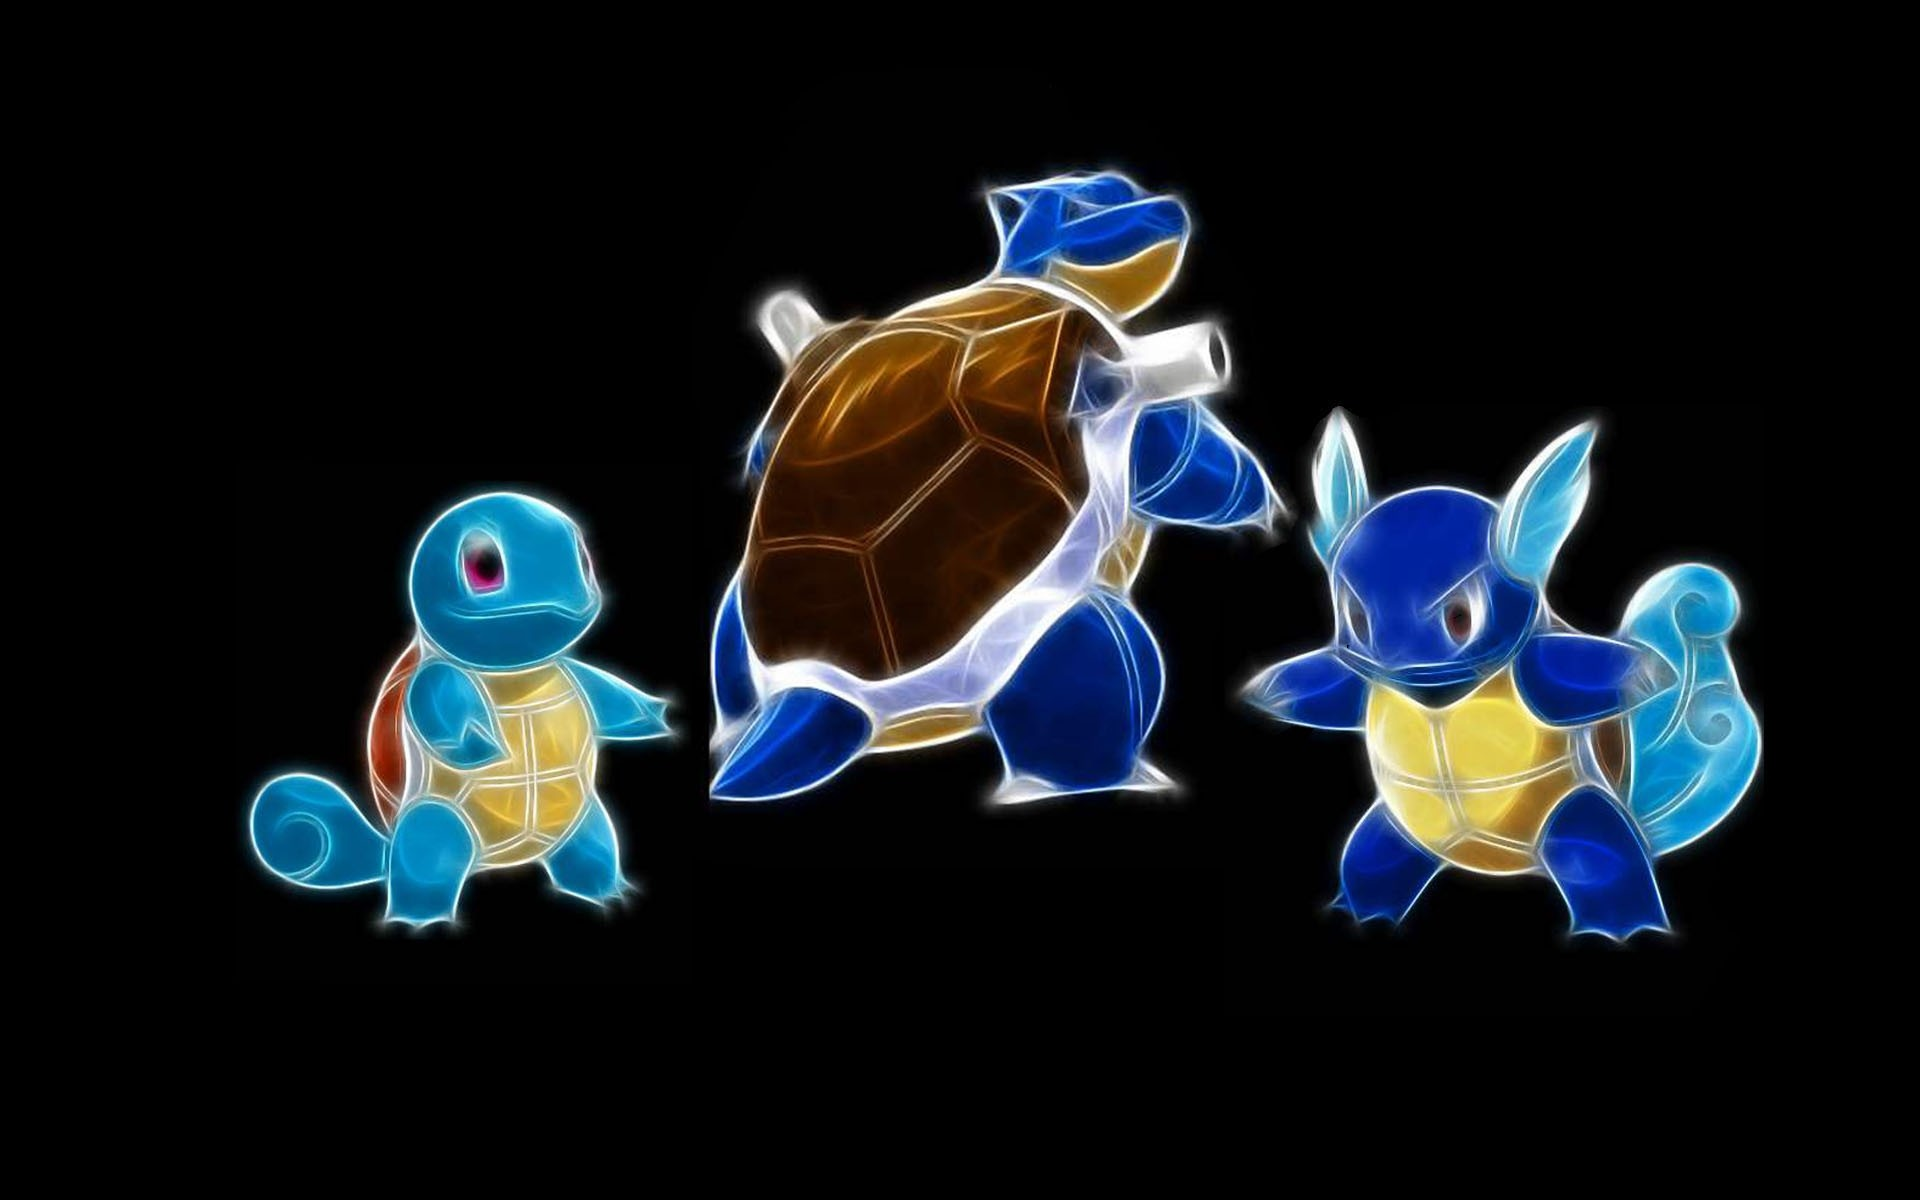 Res: 1920x1200, pokemon wartortle squirtle blastoise black background  wallpaper  Art HD Wallpaper